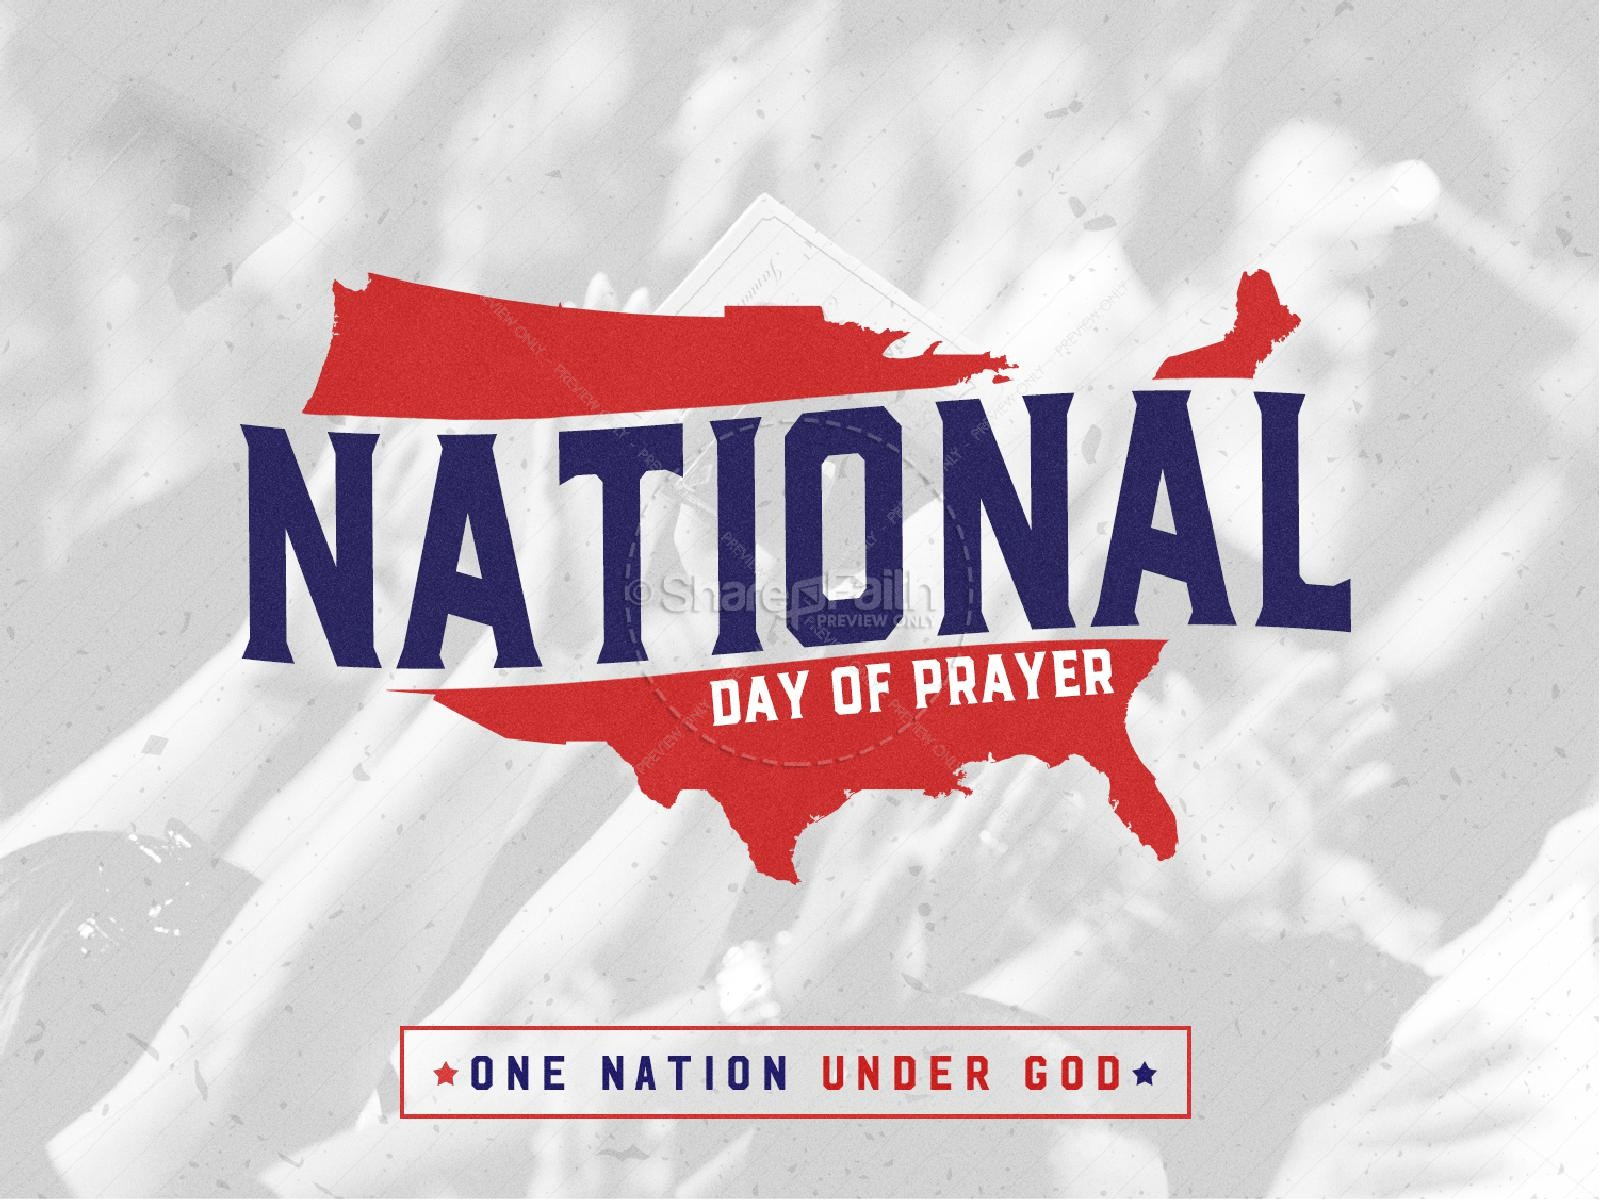 American National Day of Prayer Graphic Design | slide 1